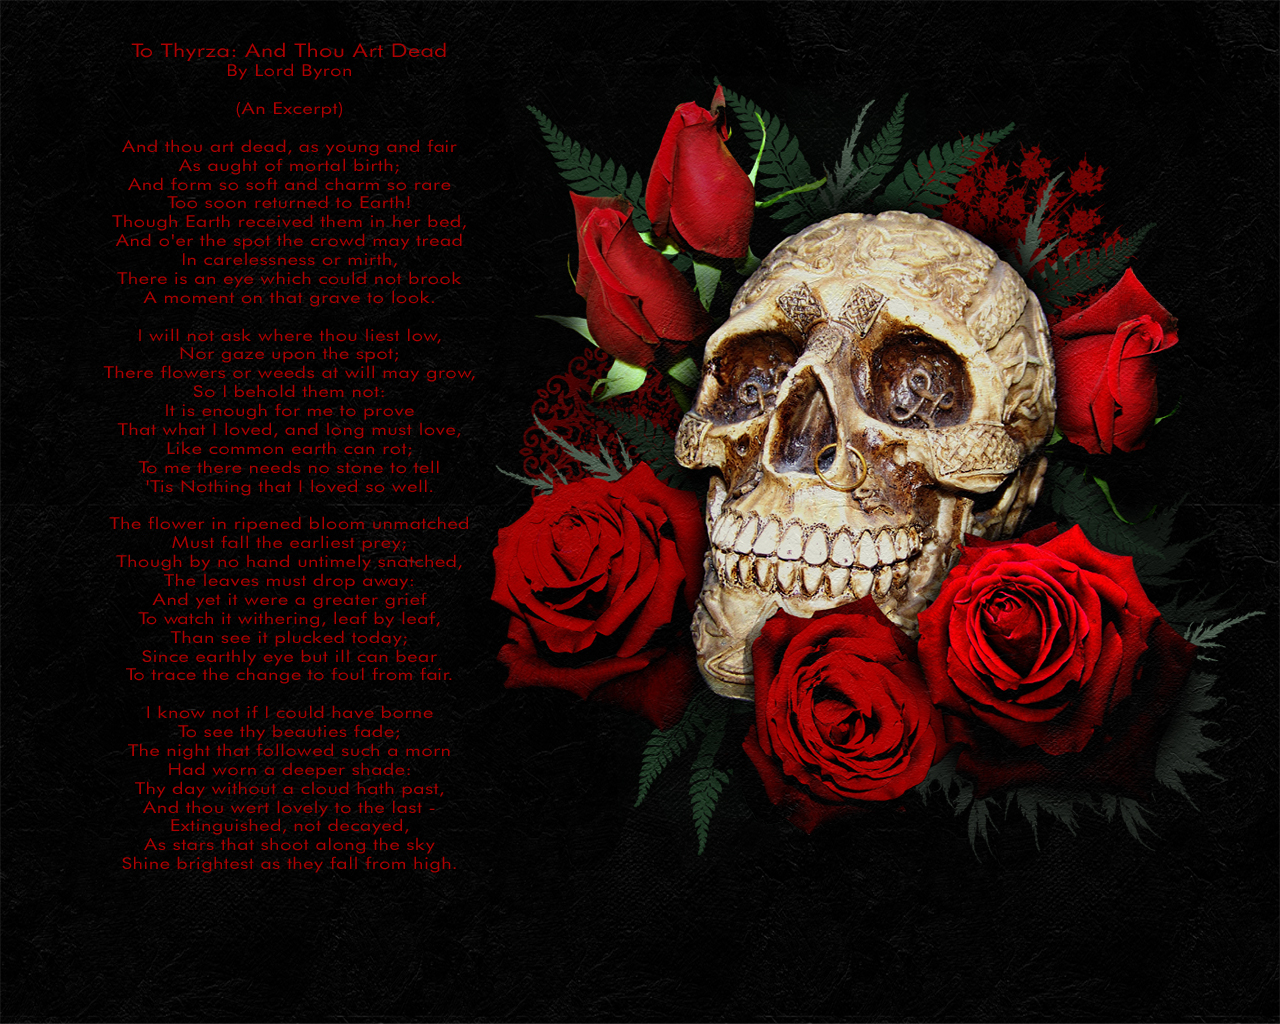 http://2.bp.blogspot.com/-hqg5yQCoVw0/TdcYrNzQAPI/AAAAAAAAAOo/Y4-TonVVWVA/s1600/Skull_and_Red_Roses_wallpaper_by_SerenityNme.jpg